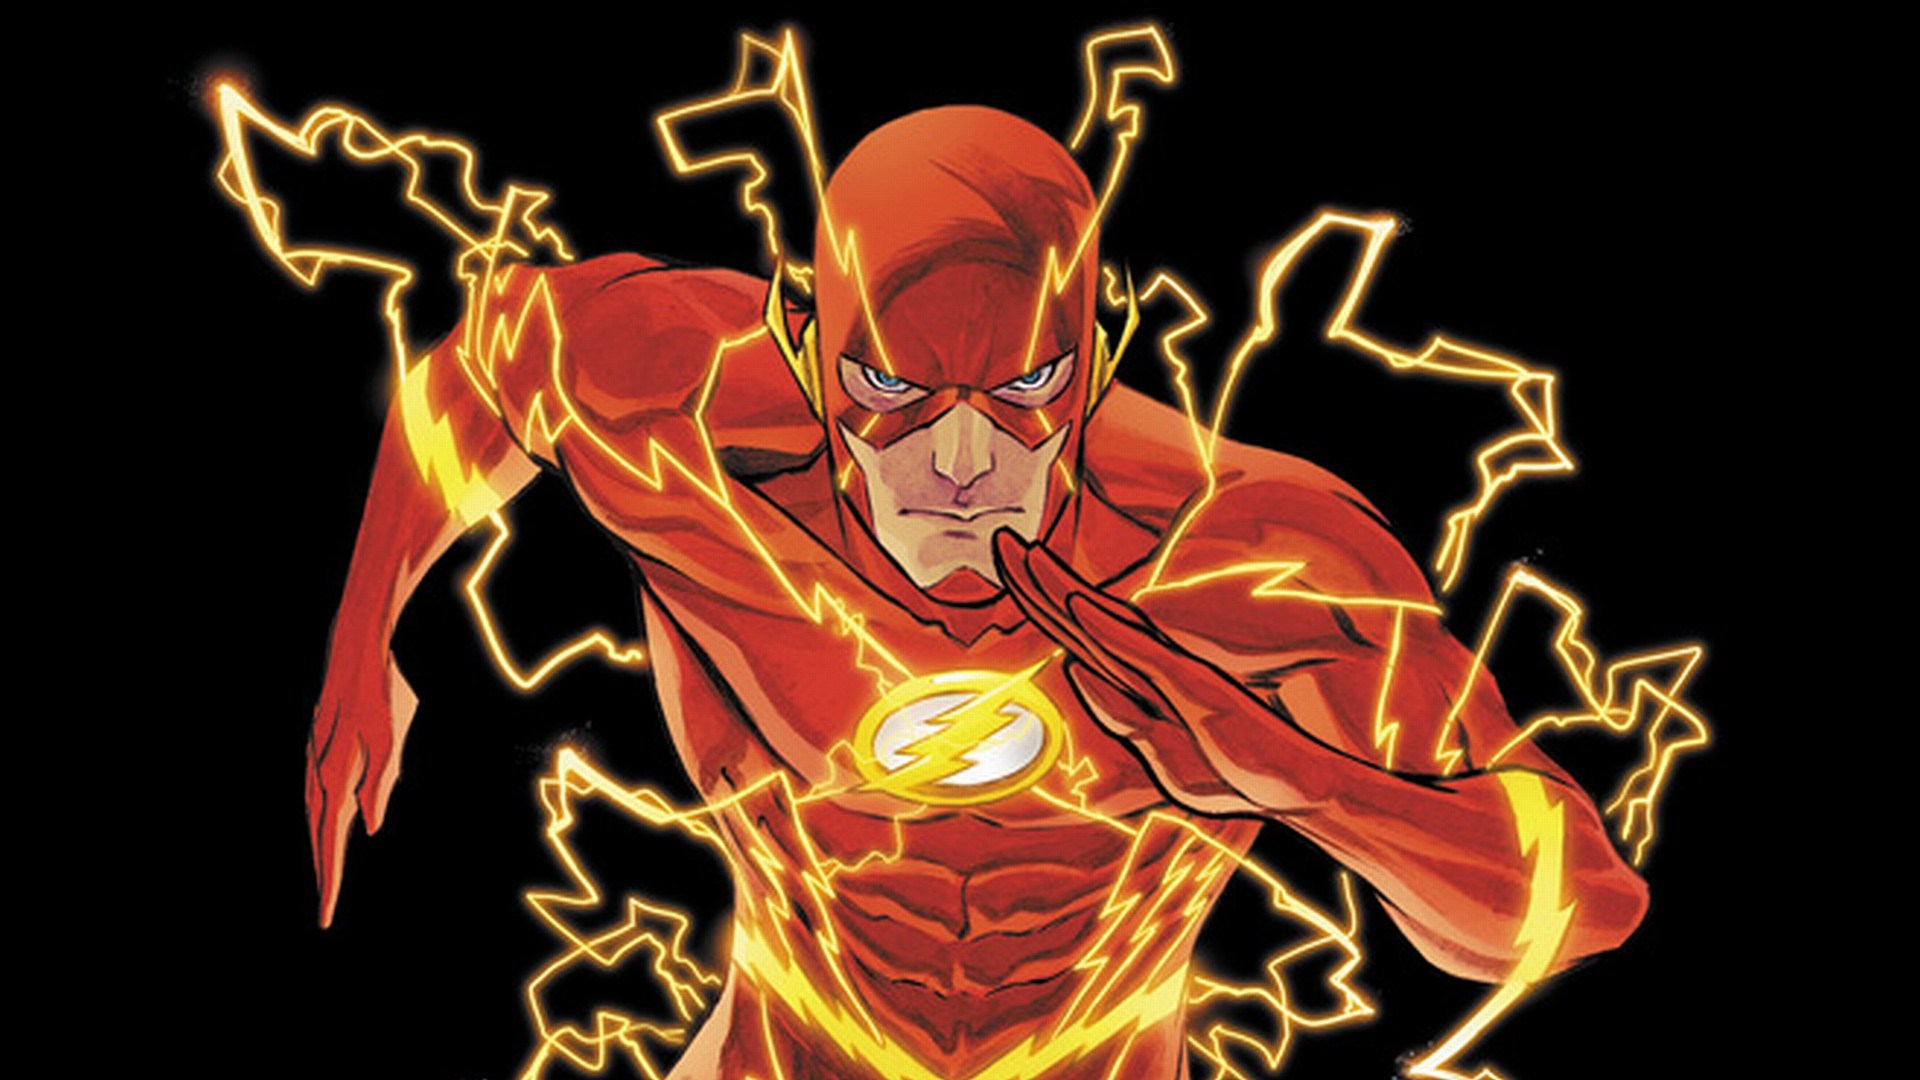 The Flash New 52 Wallpaper The Flash New 52 Wallpaper 1920x1080